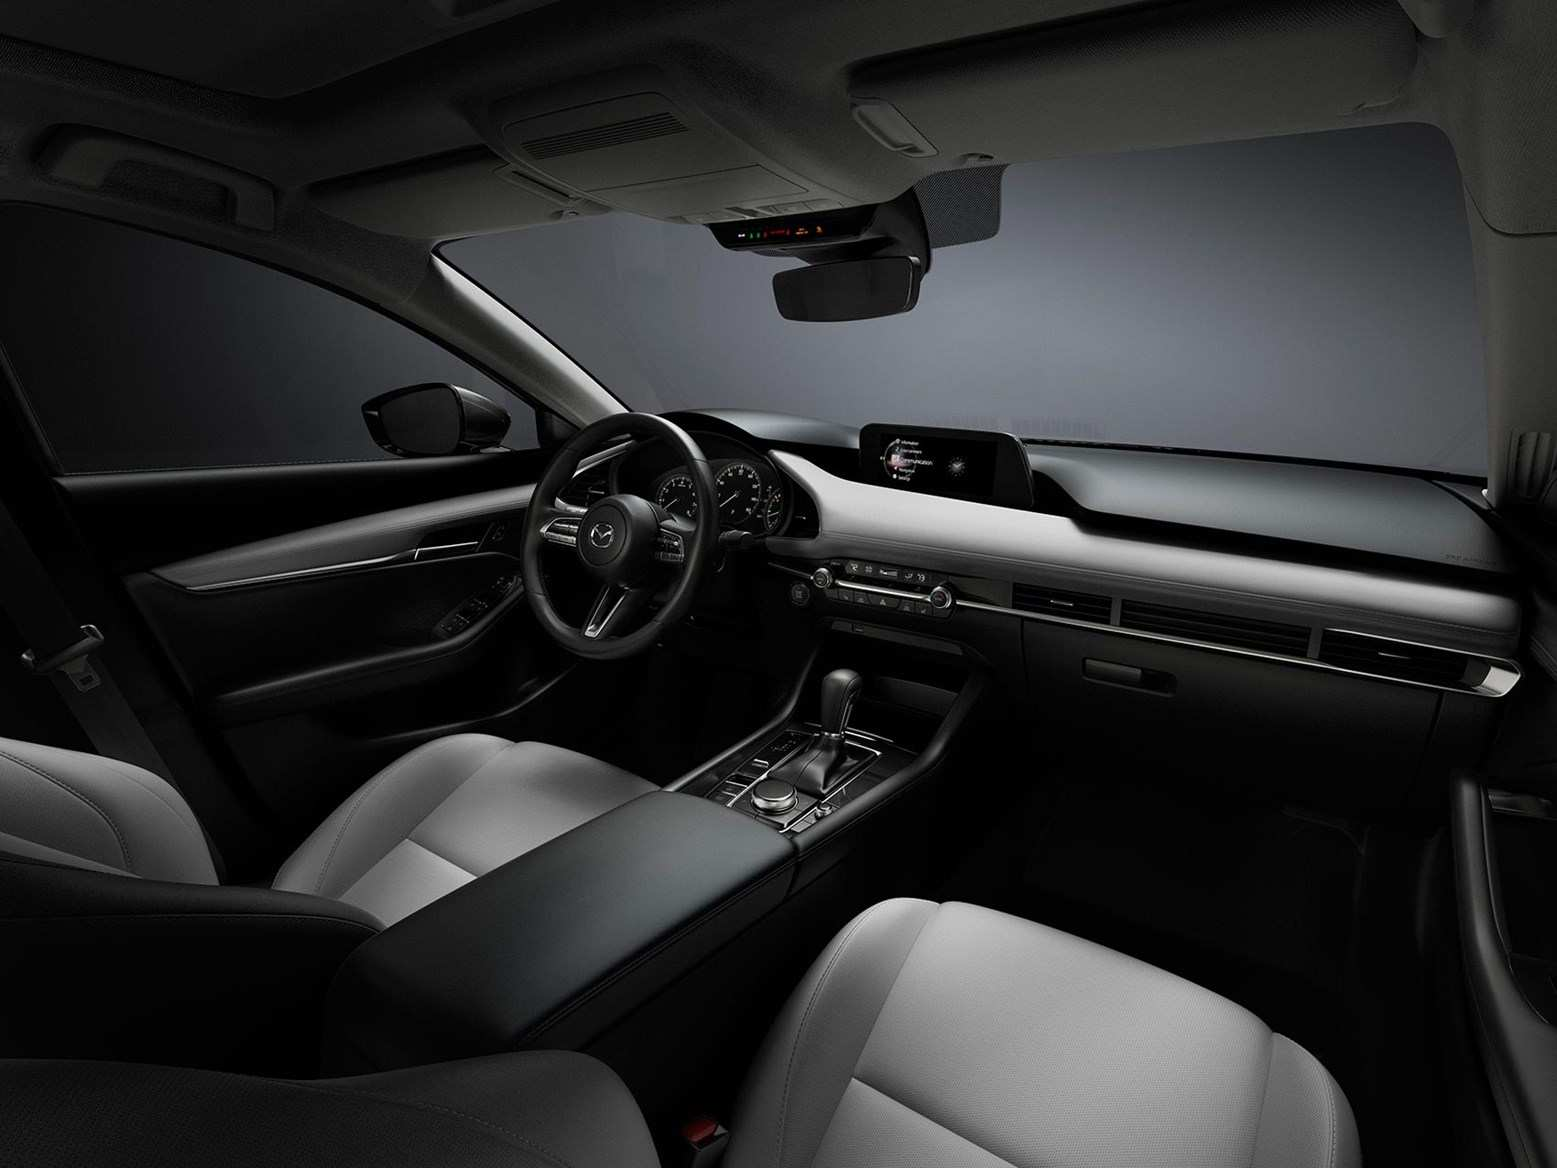 54 New Mazda 3 2019 Interior Photos